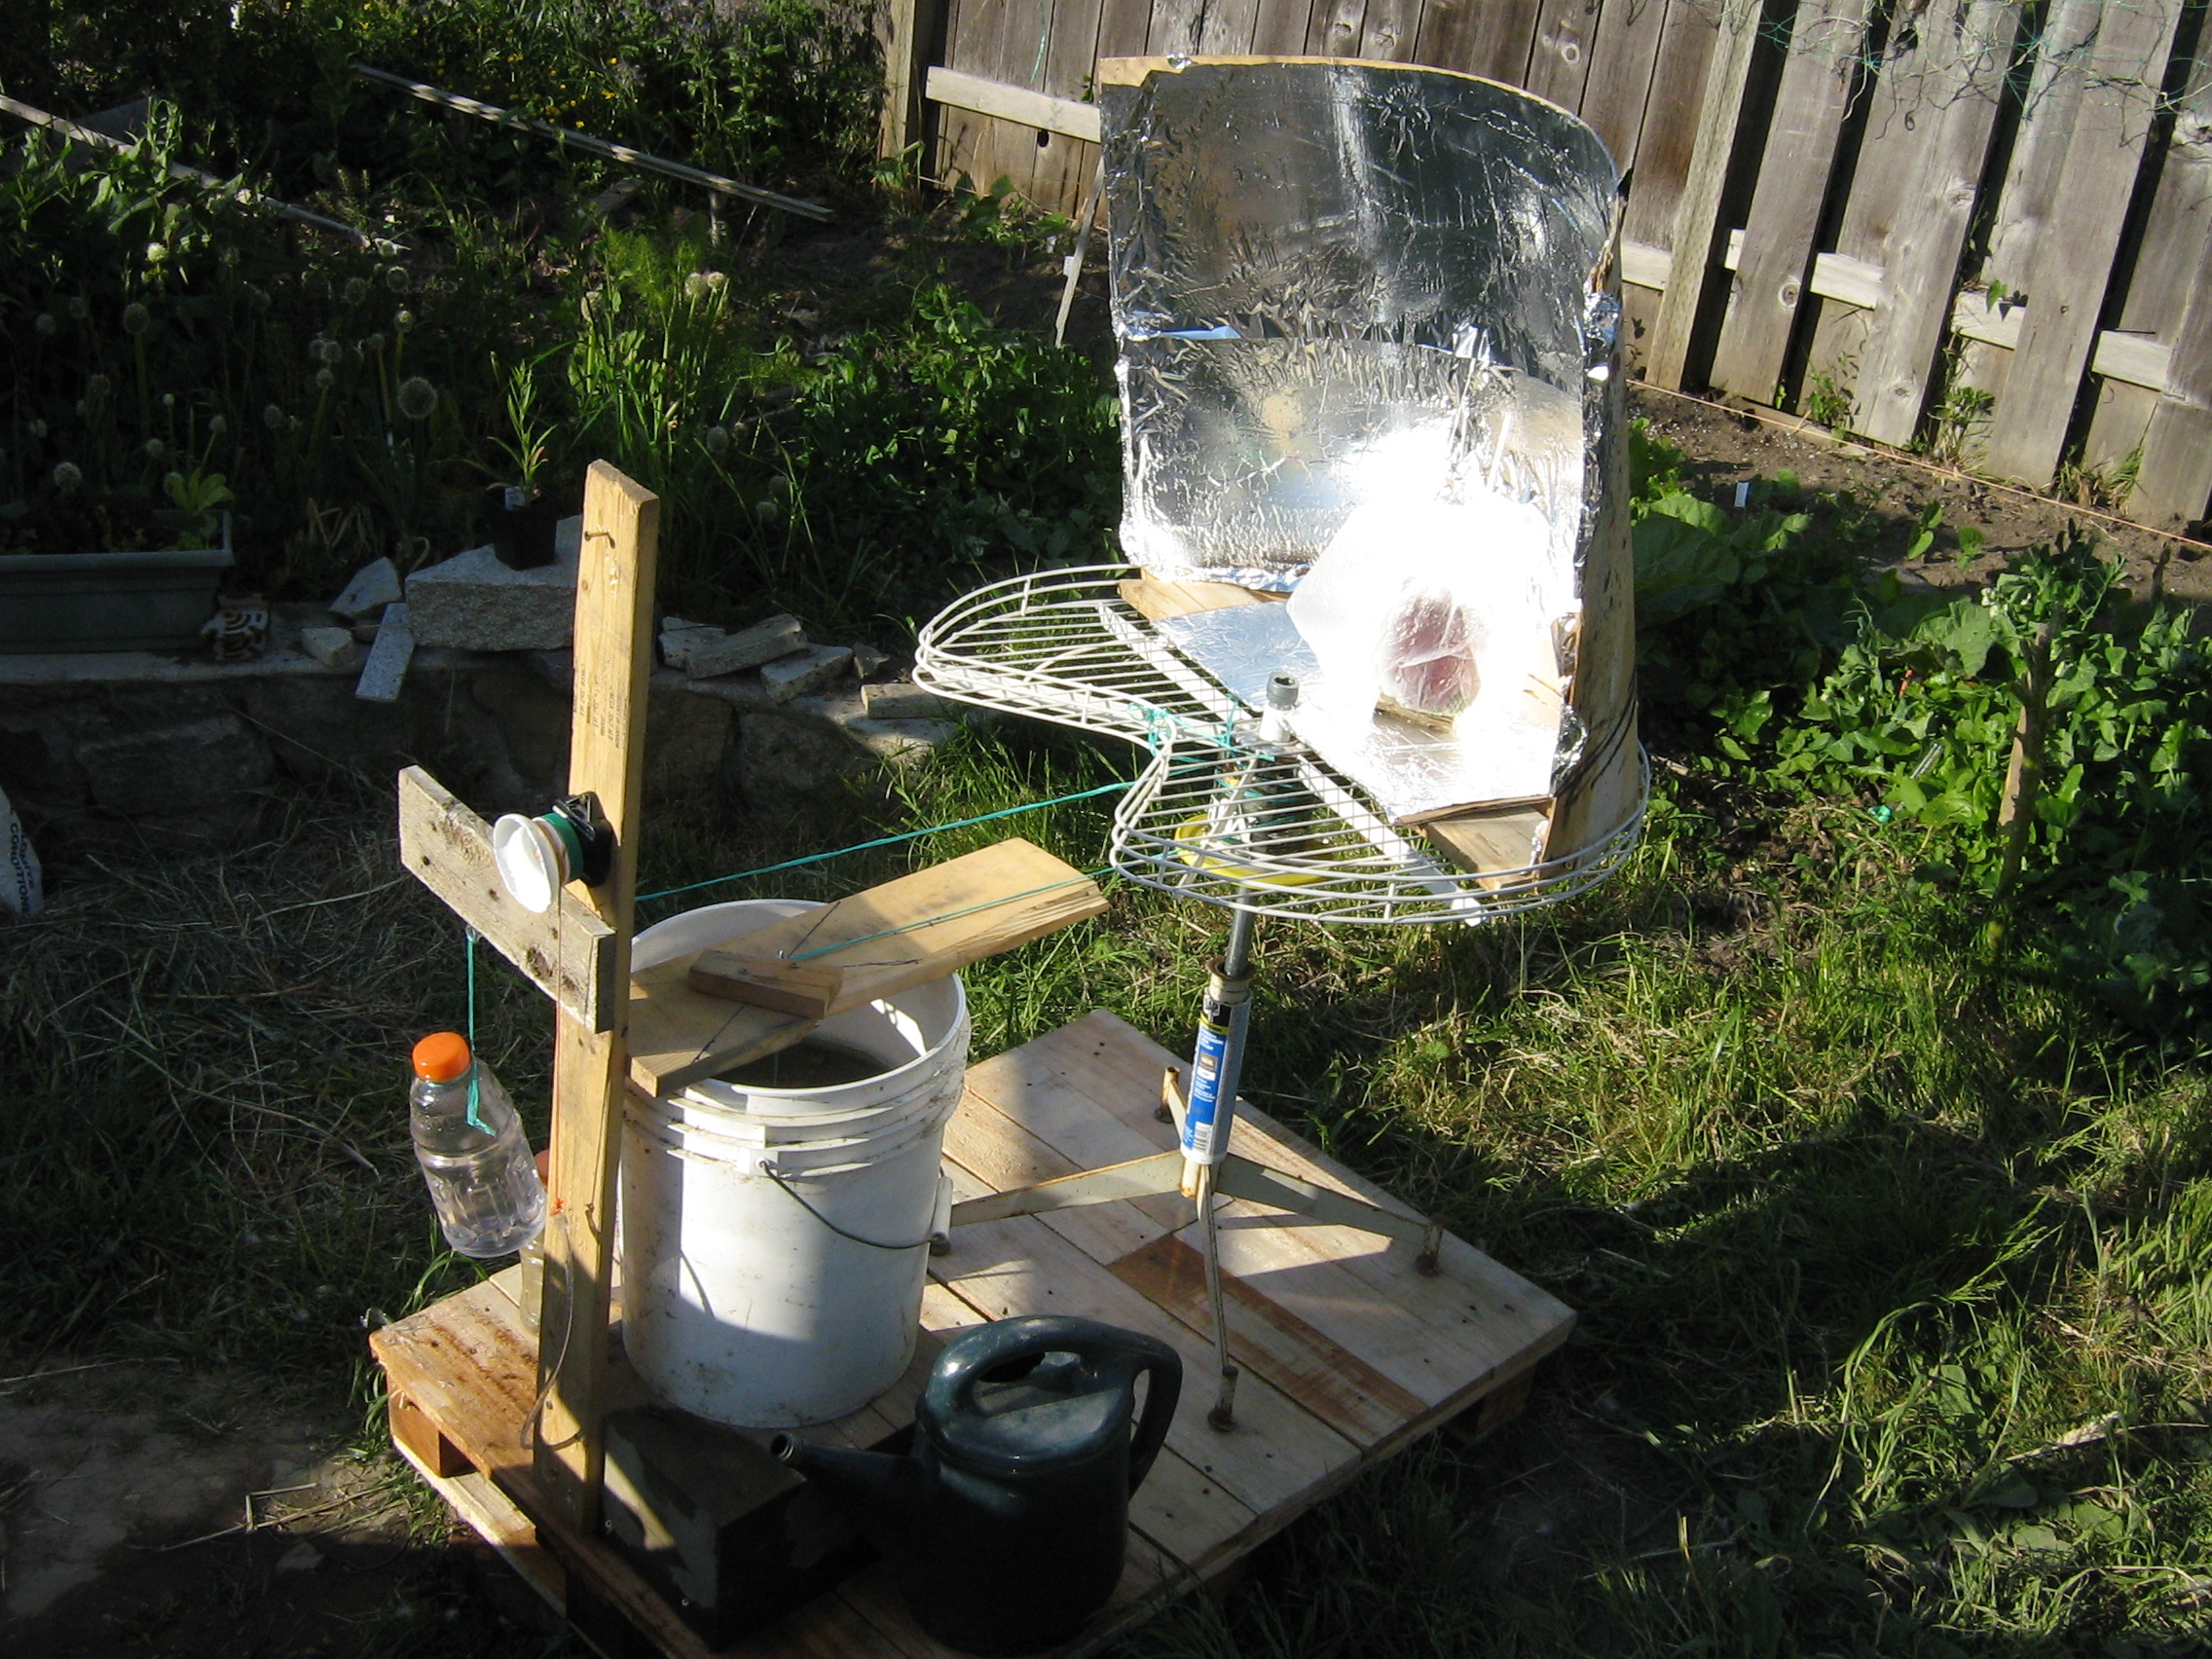 Adapt a clock today! Cheap trackers boost solar panel and solar cooker performance.